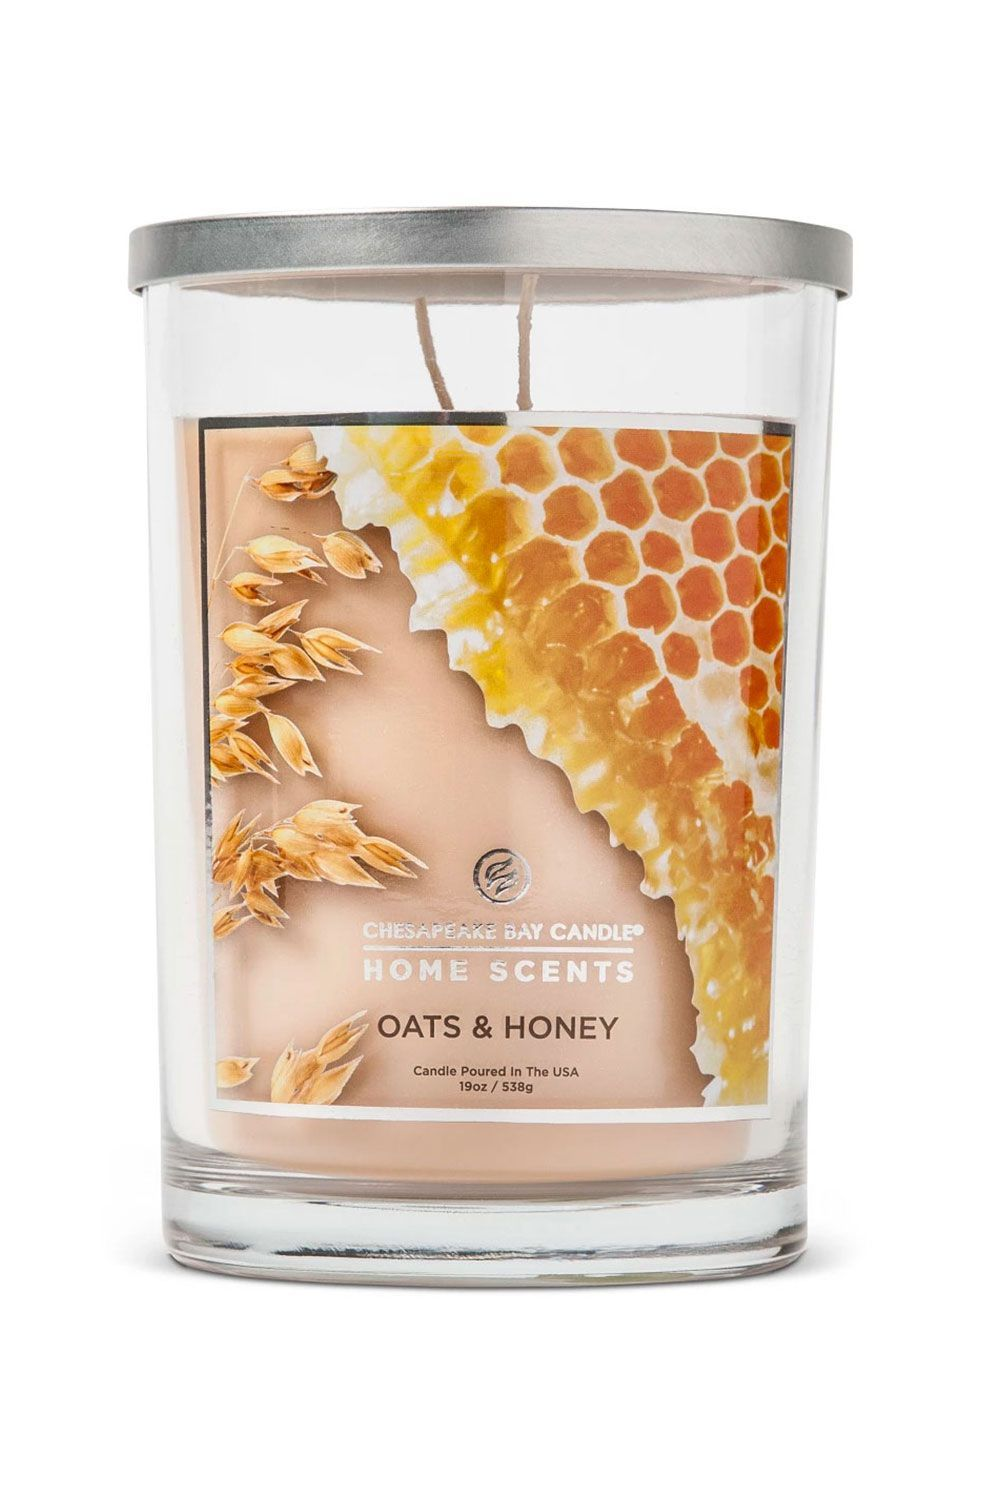 Home Scents Candle Oats & Honey